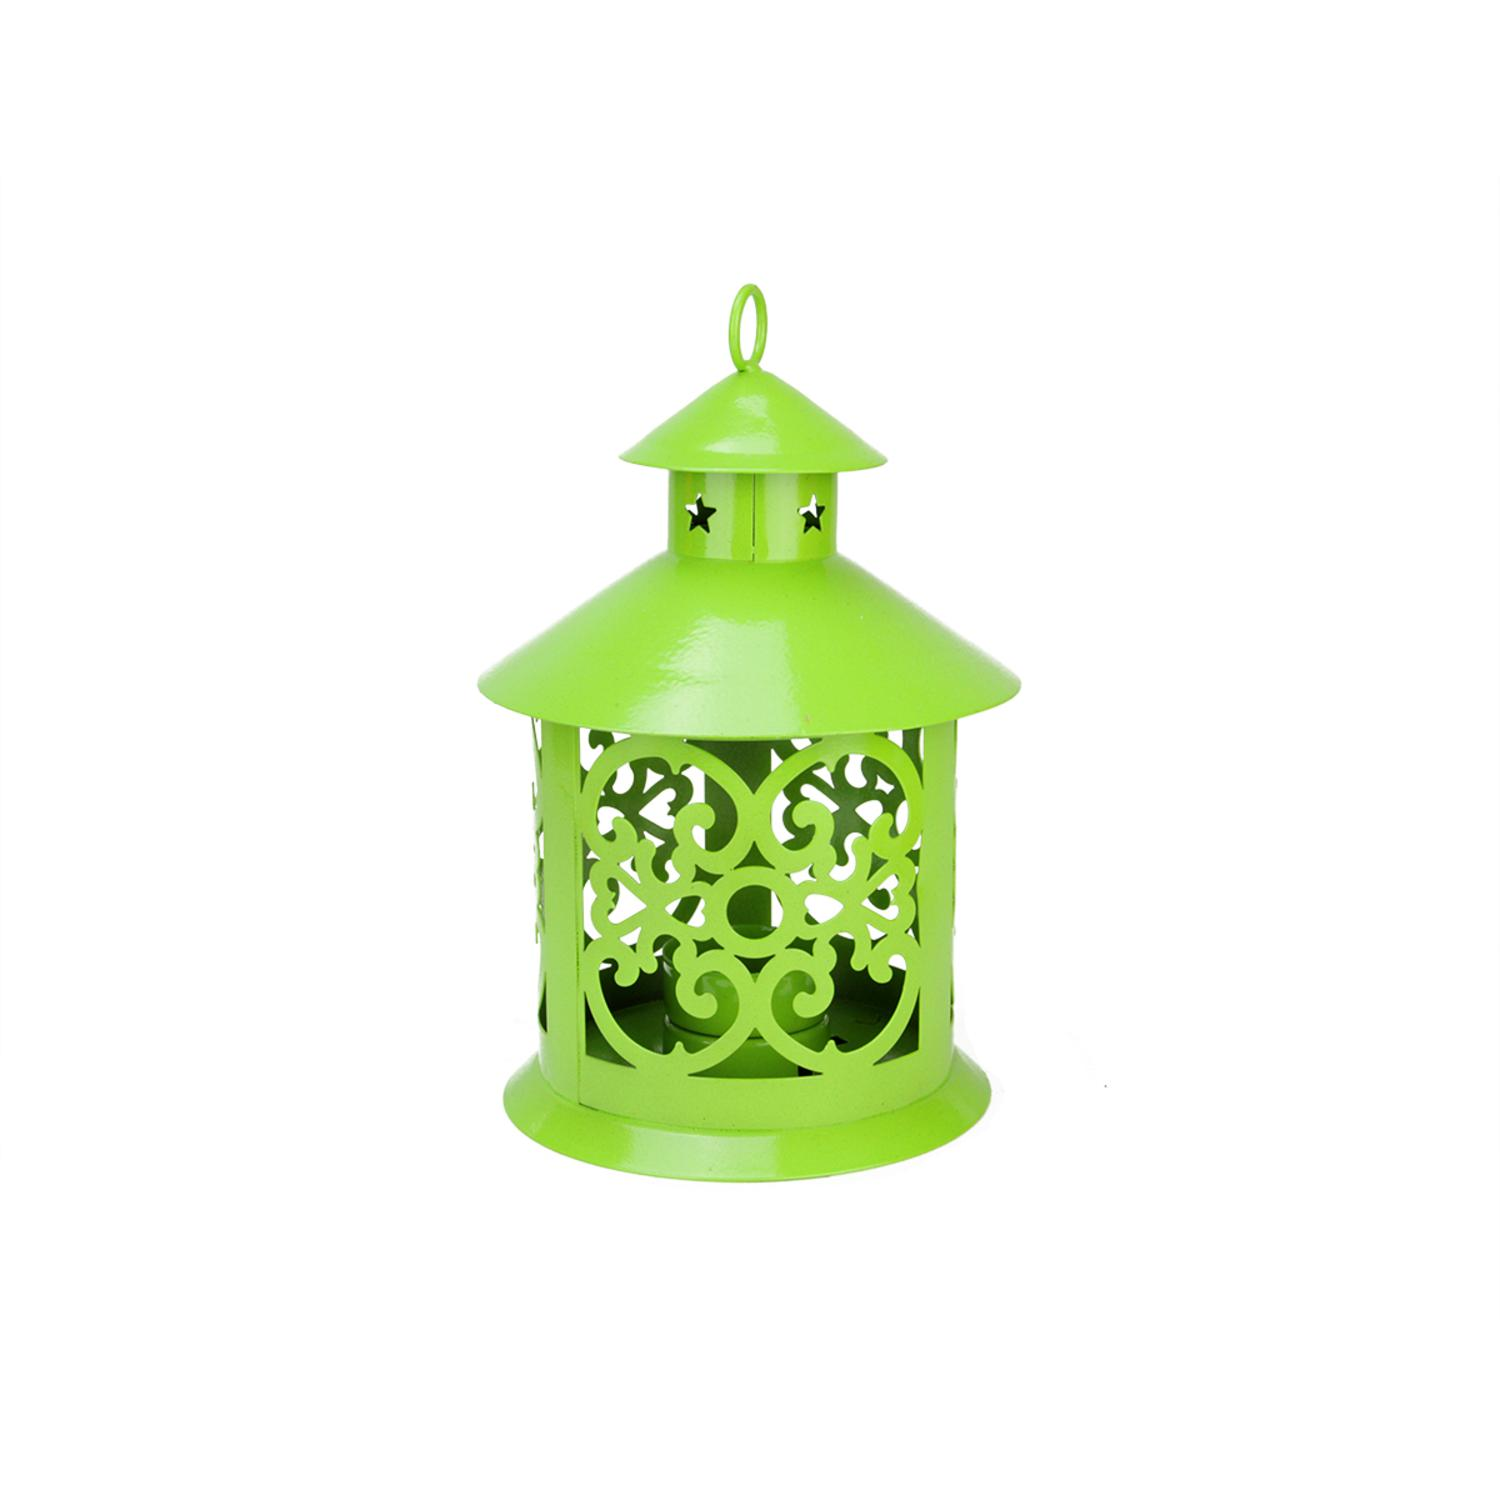 ''8'''' Shiny Lime Green Votive or TEALIGHT Candle Holder Lantern with Star and Scroll Cutouts''